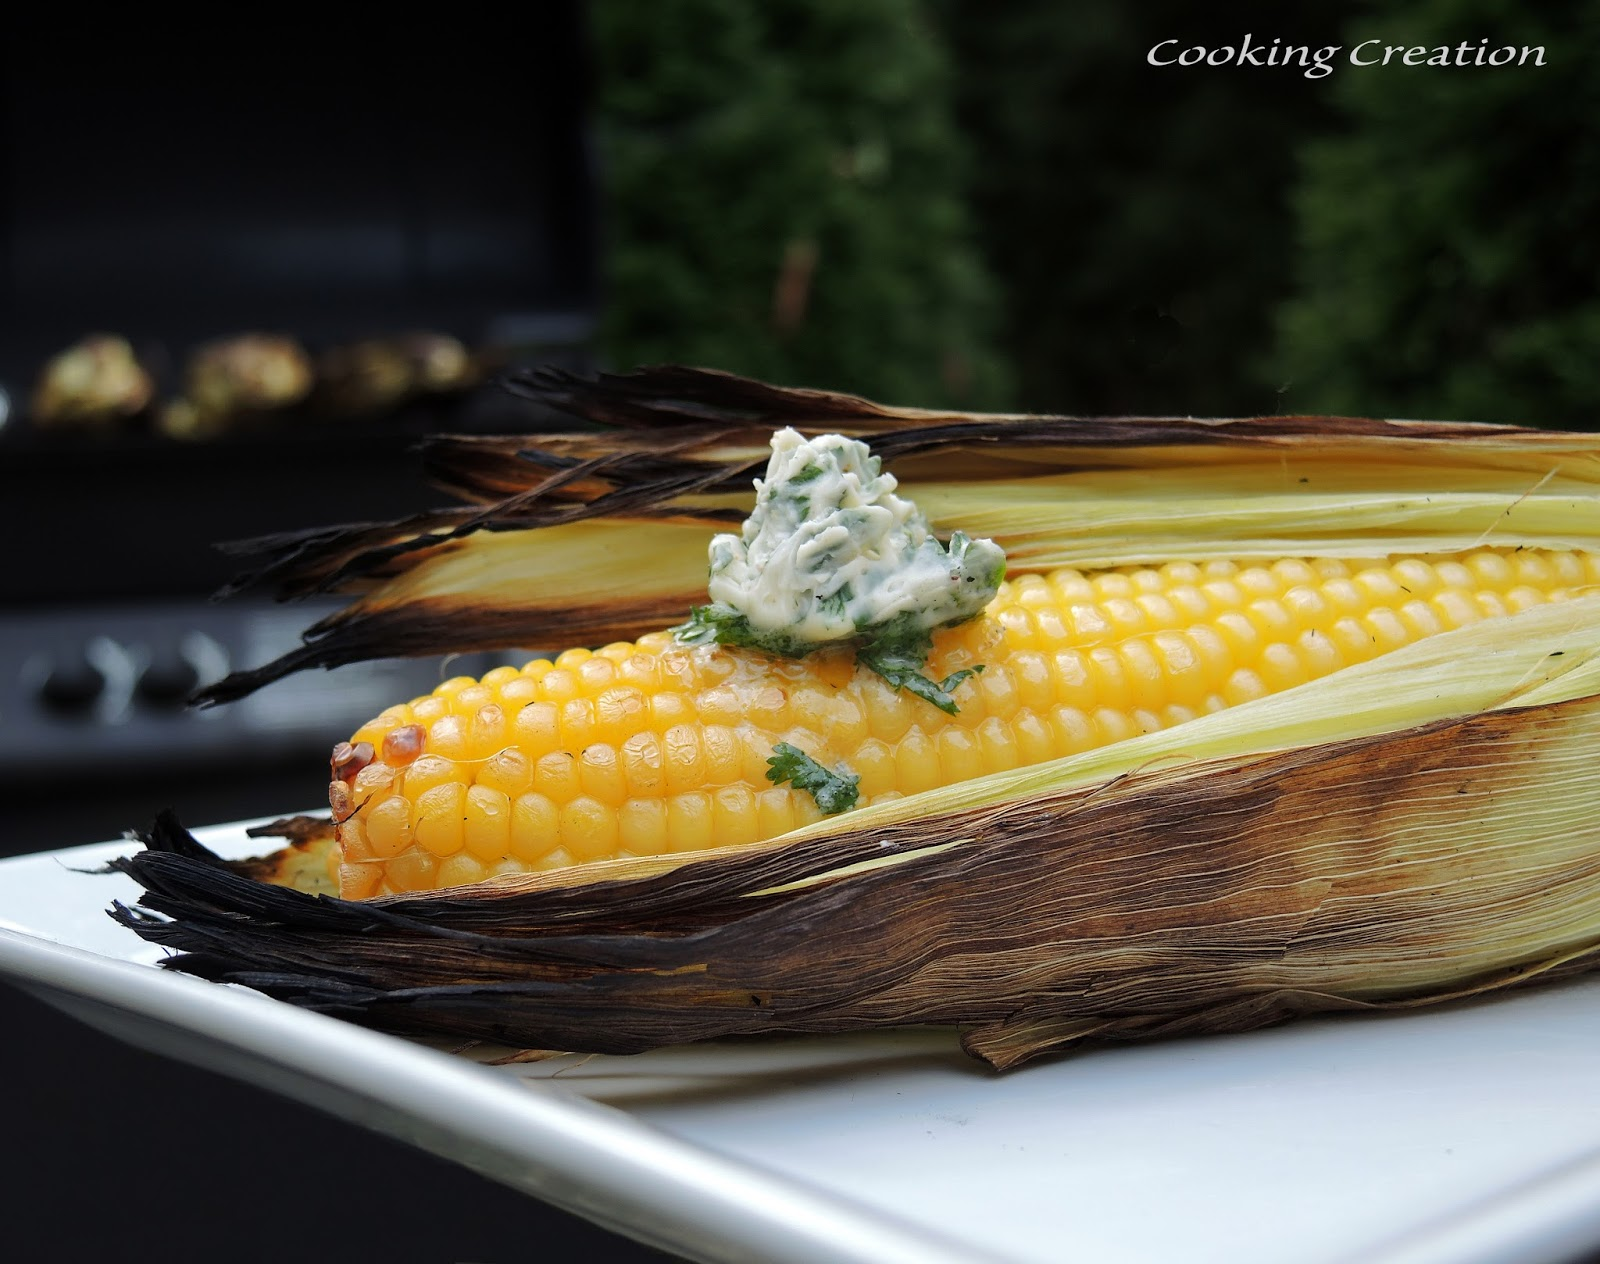 Cooking Creation: Grilled Corn on the Cob with Cilantro-Lime Butter